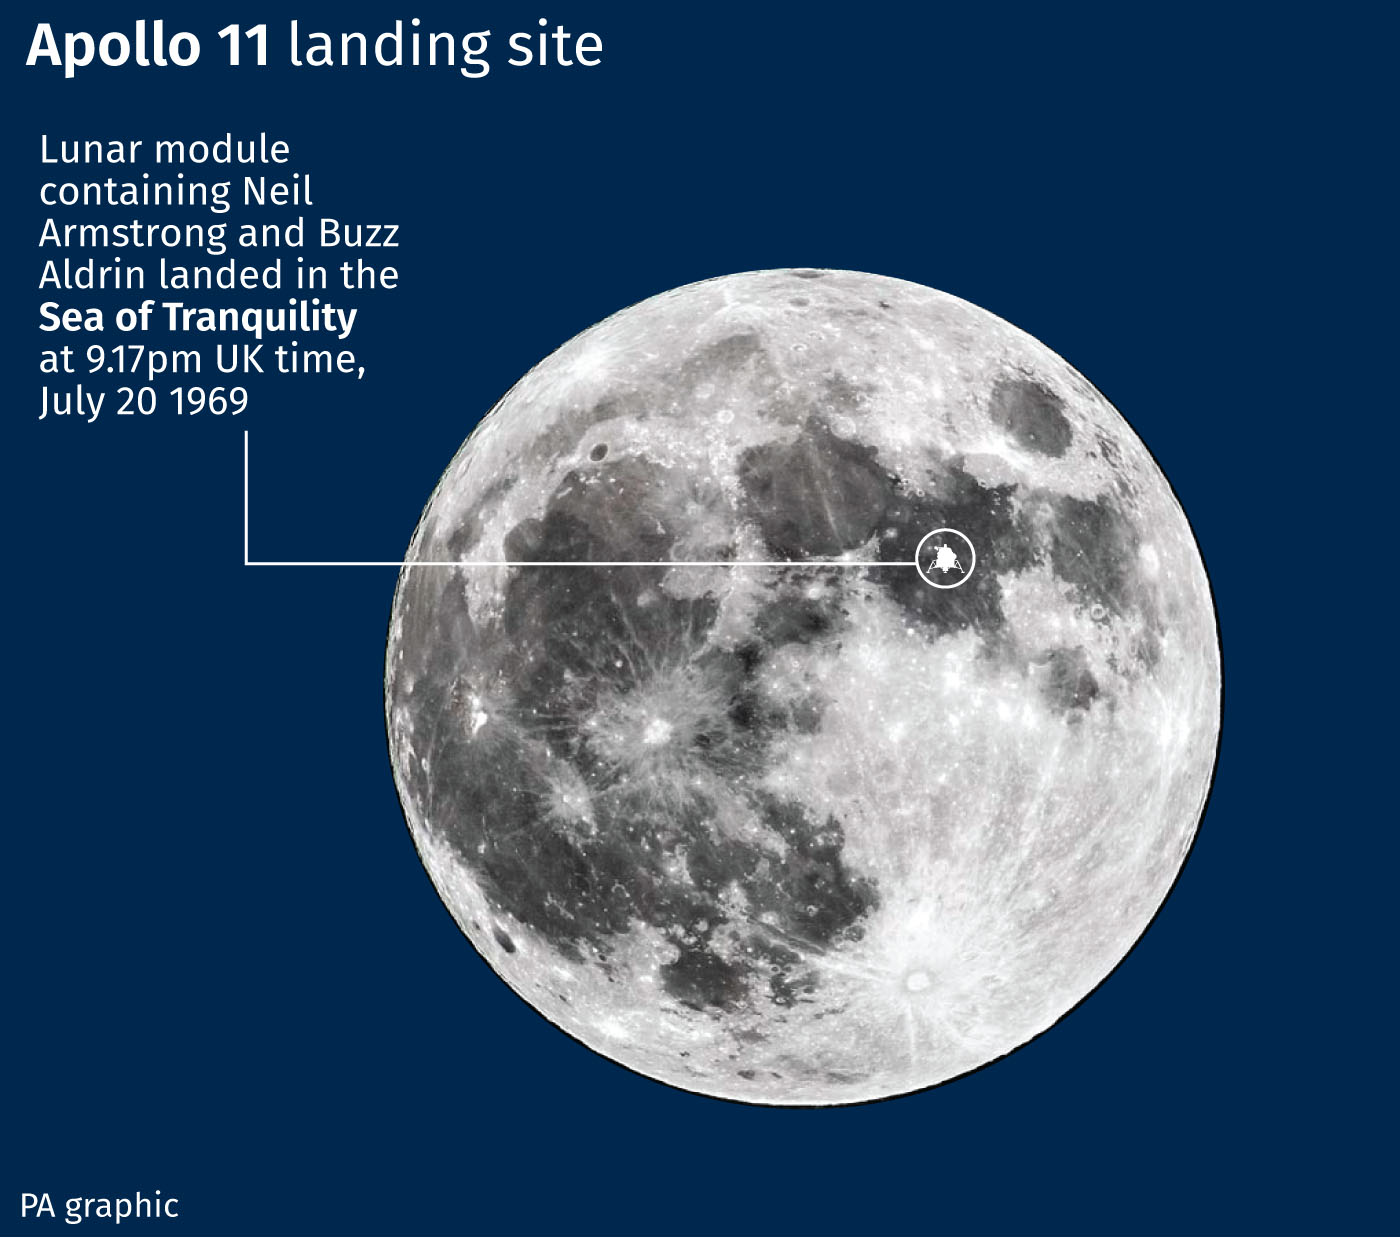 Apollo 11 landing site